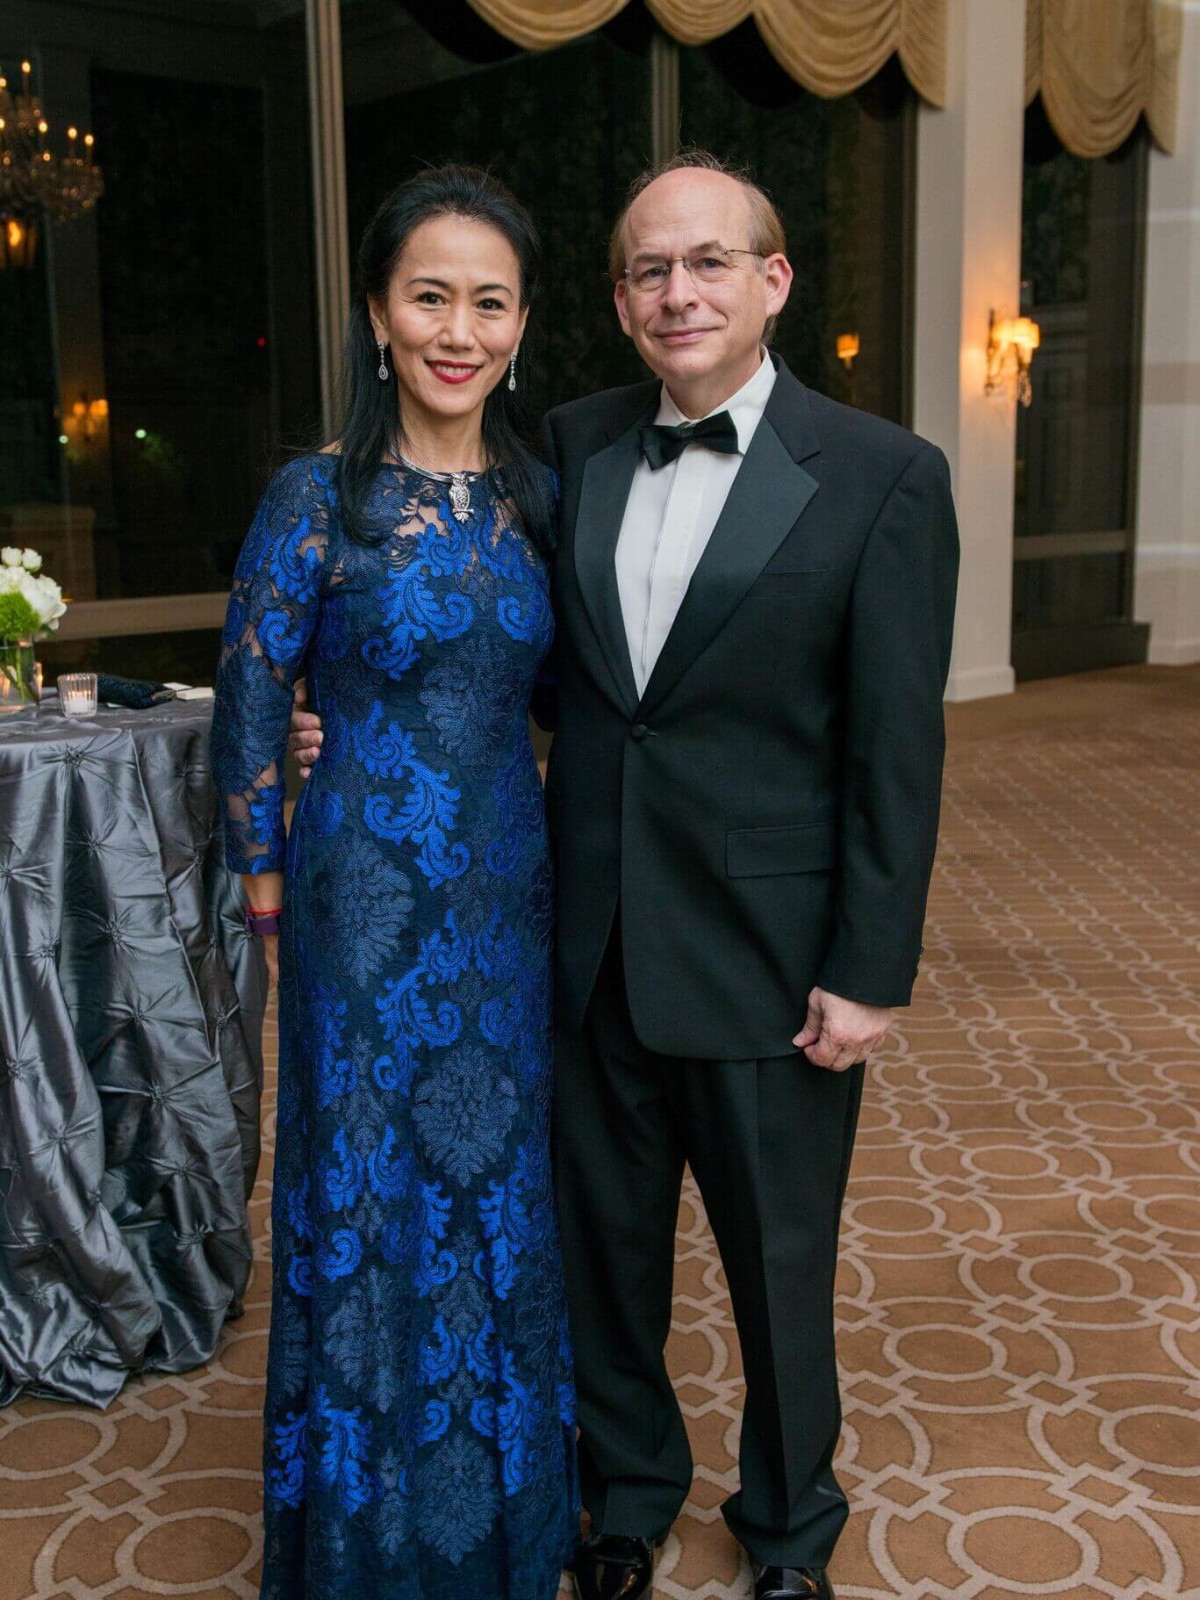 Y. Ping Sun, David W. Leebron at Rice Honors Gala